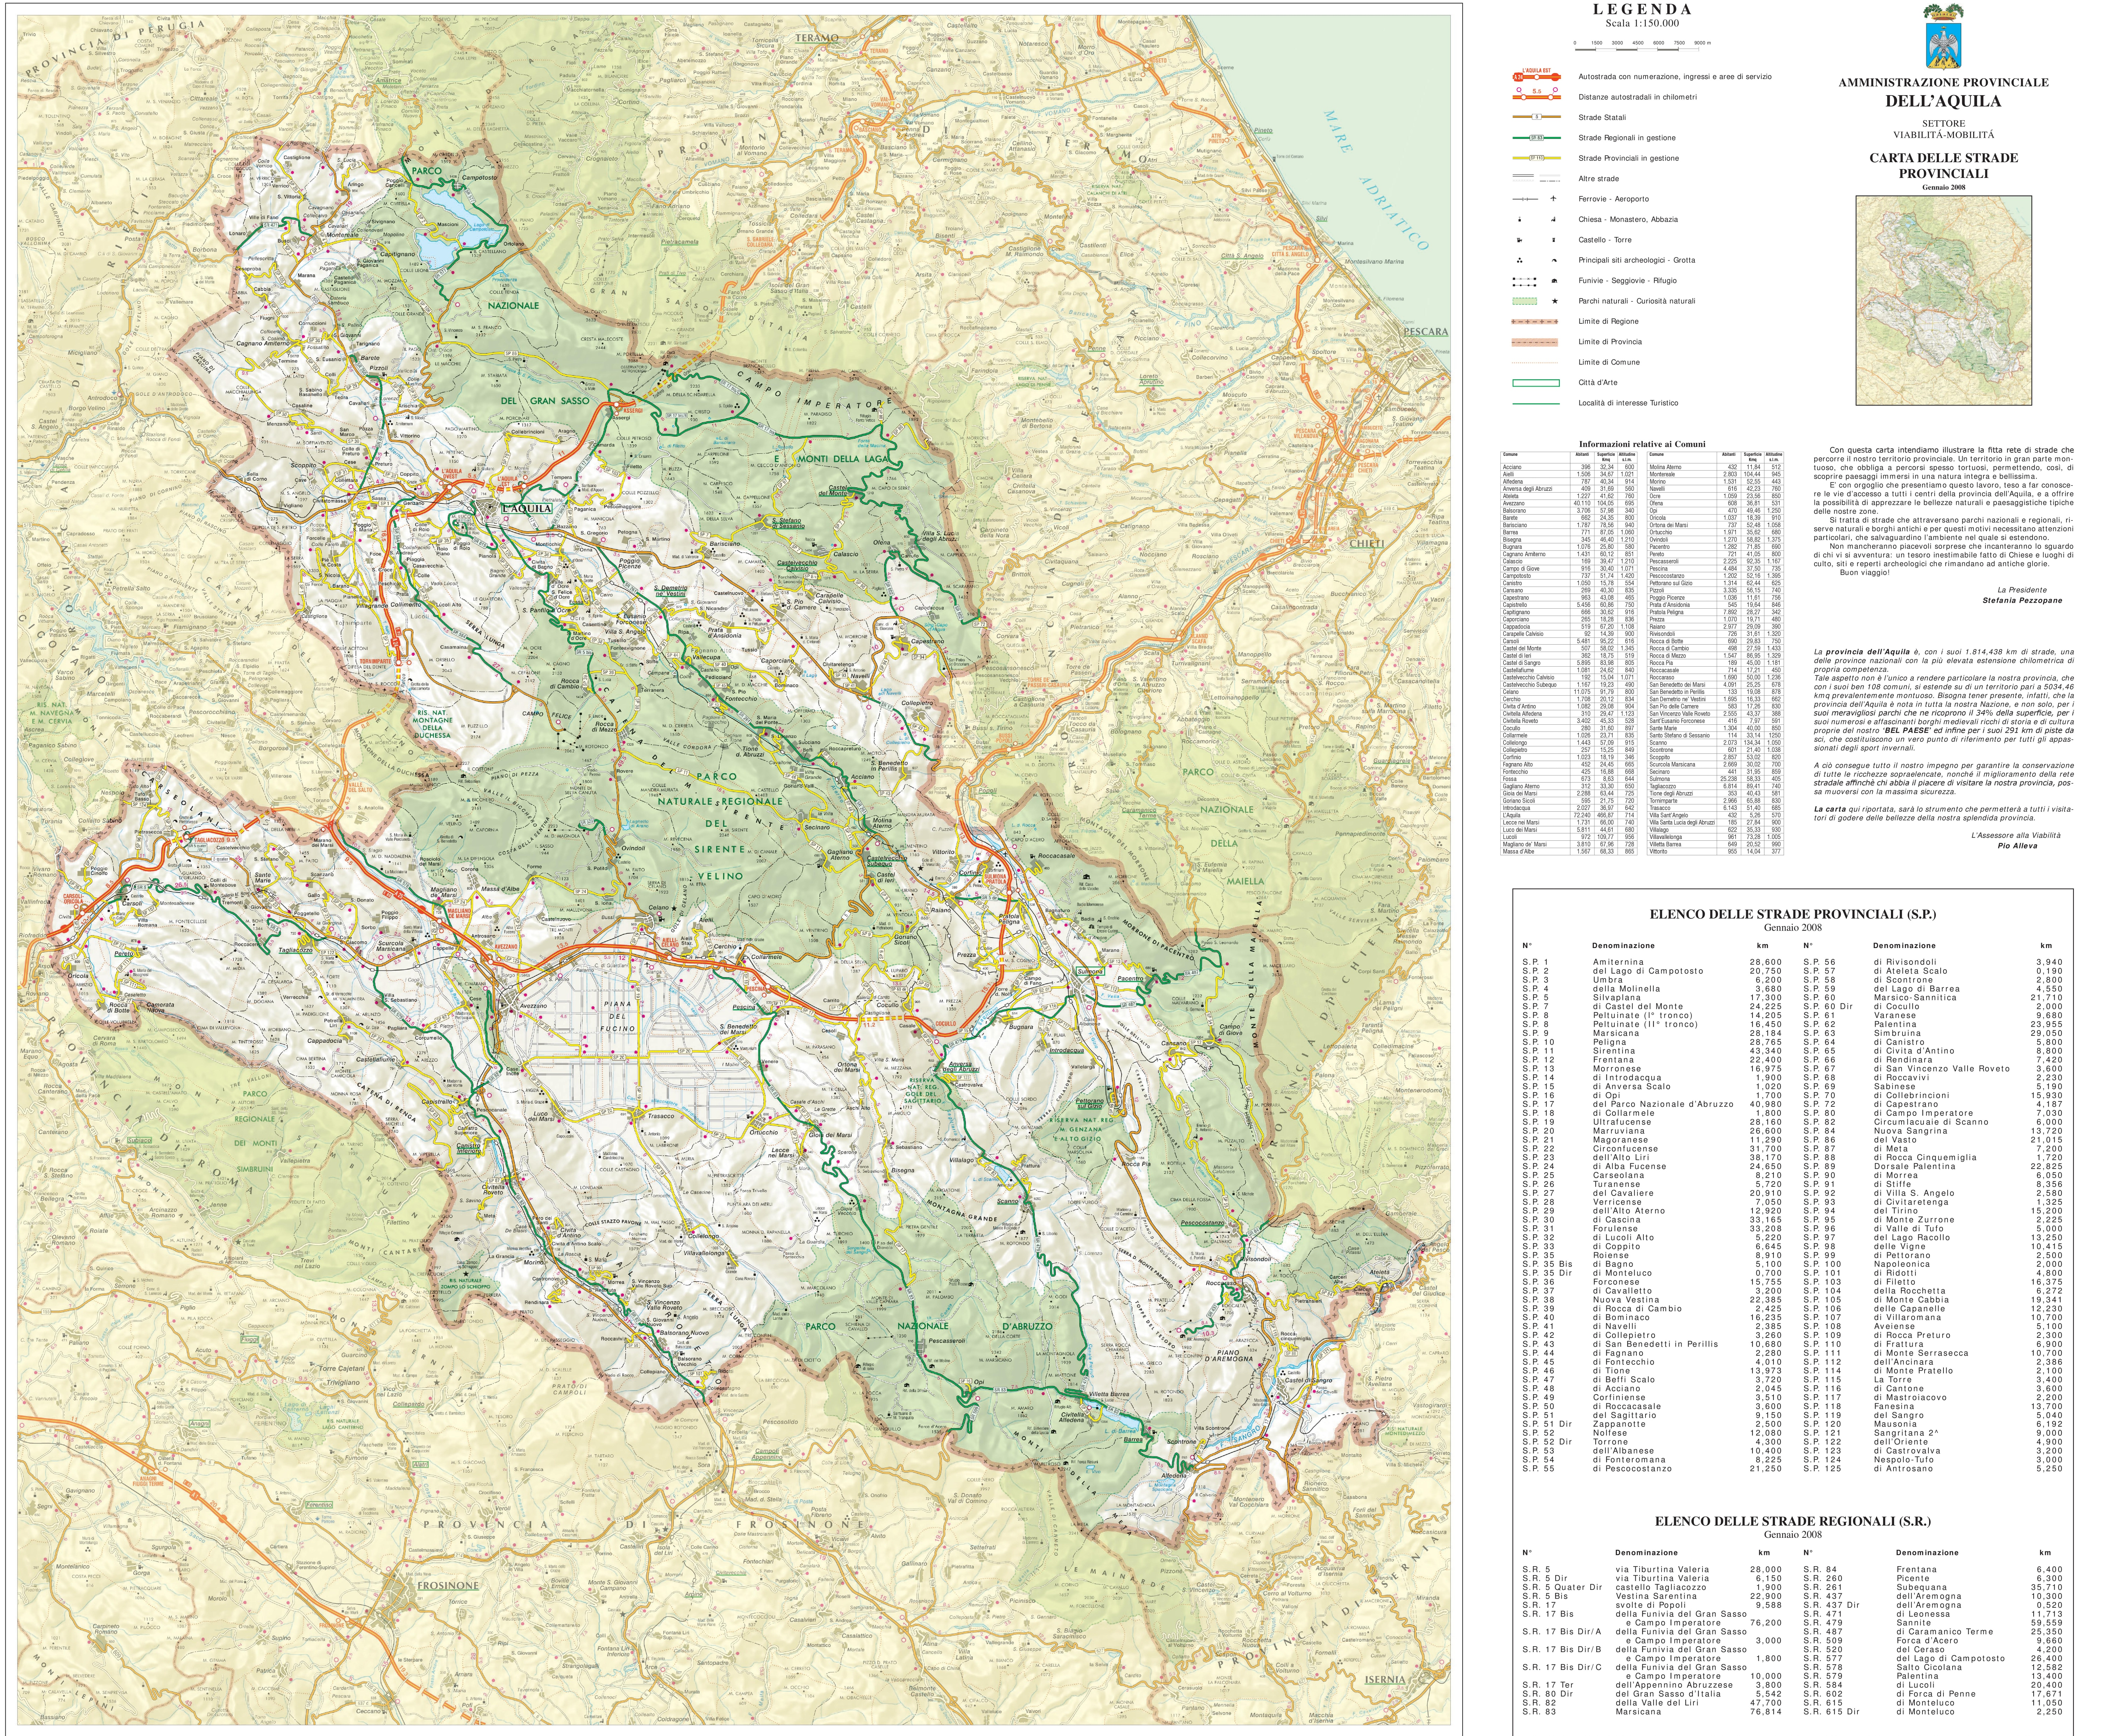 Province of LAquila tourist map